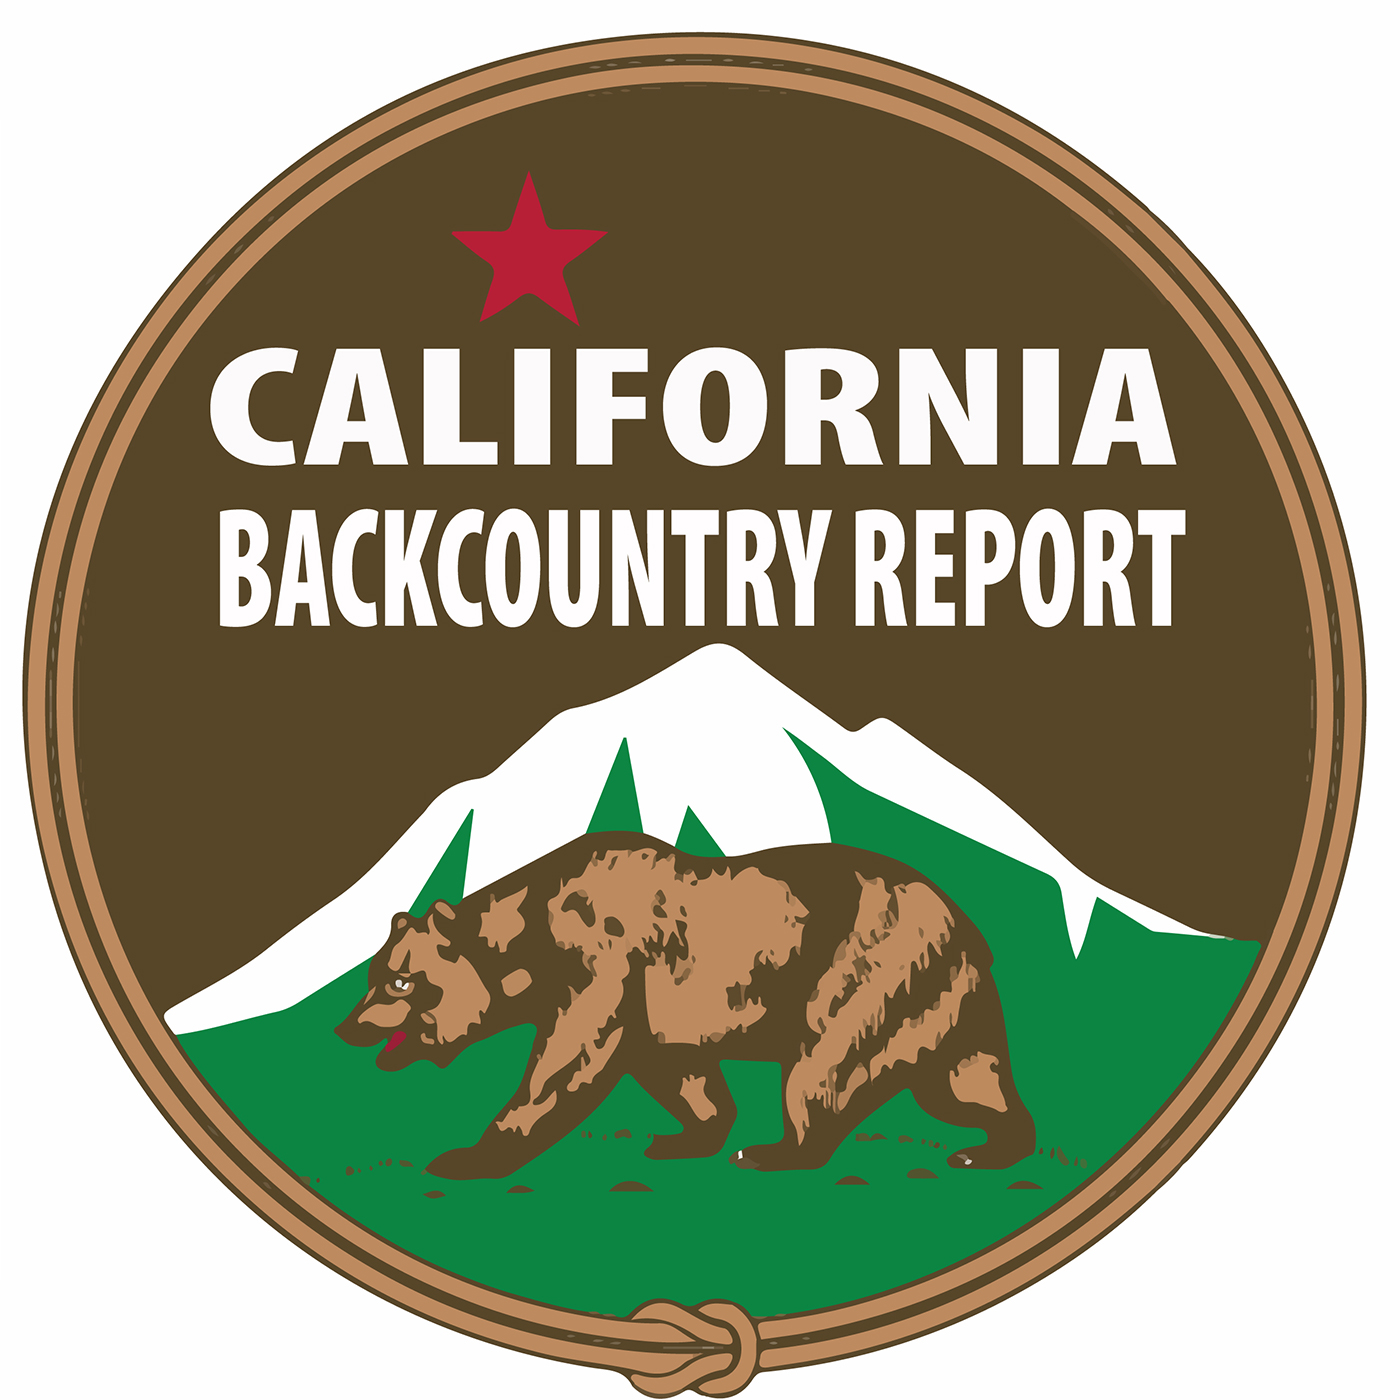 The California Backcountry Report